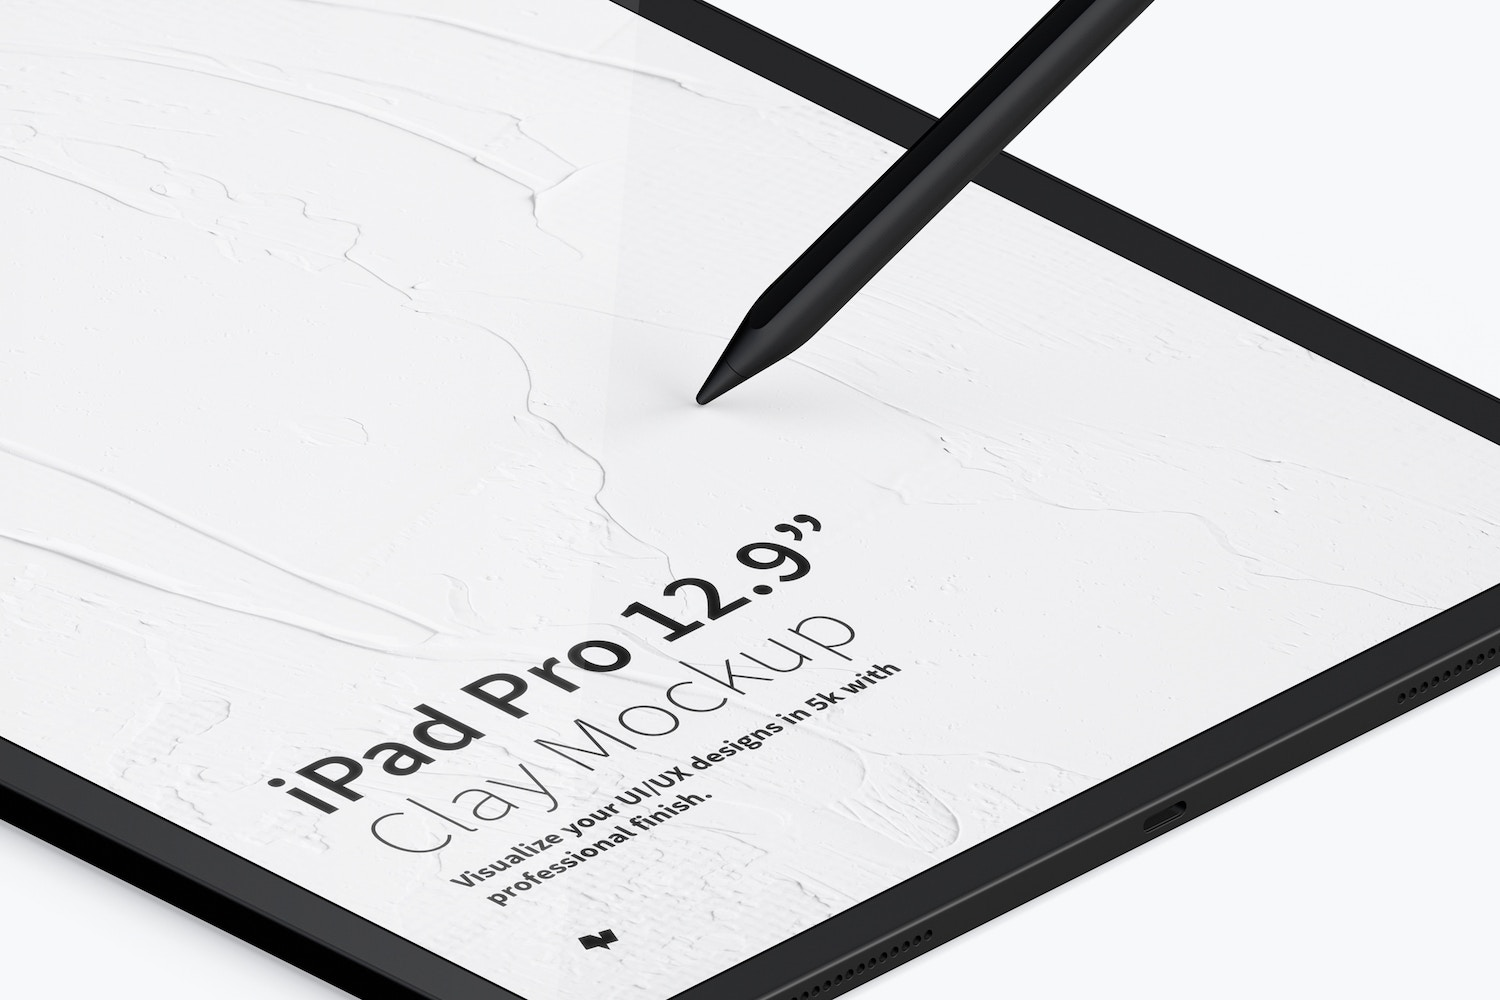 "Clay iPad Pro 12.9"" Mockup, Isometric Left View (3) by Original Mockups on Original Mockups"